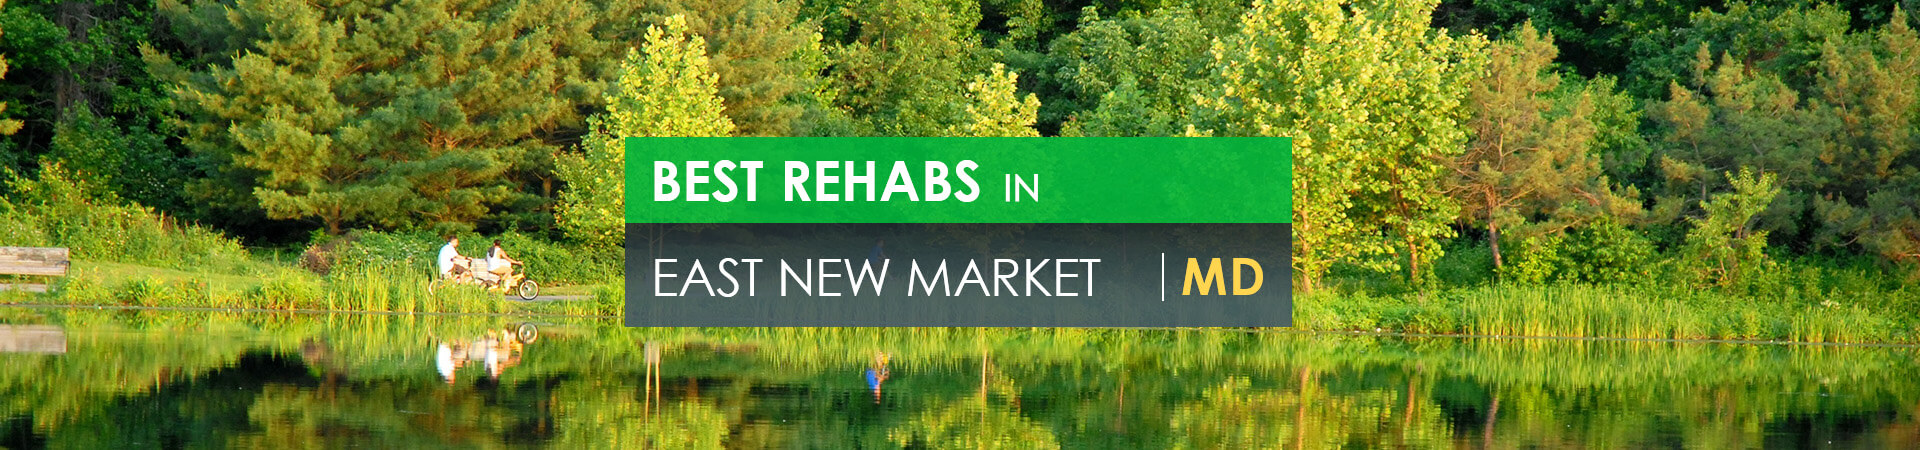 Best rehabs in East New Market, MD